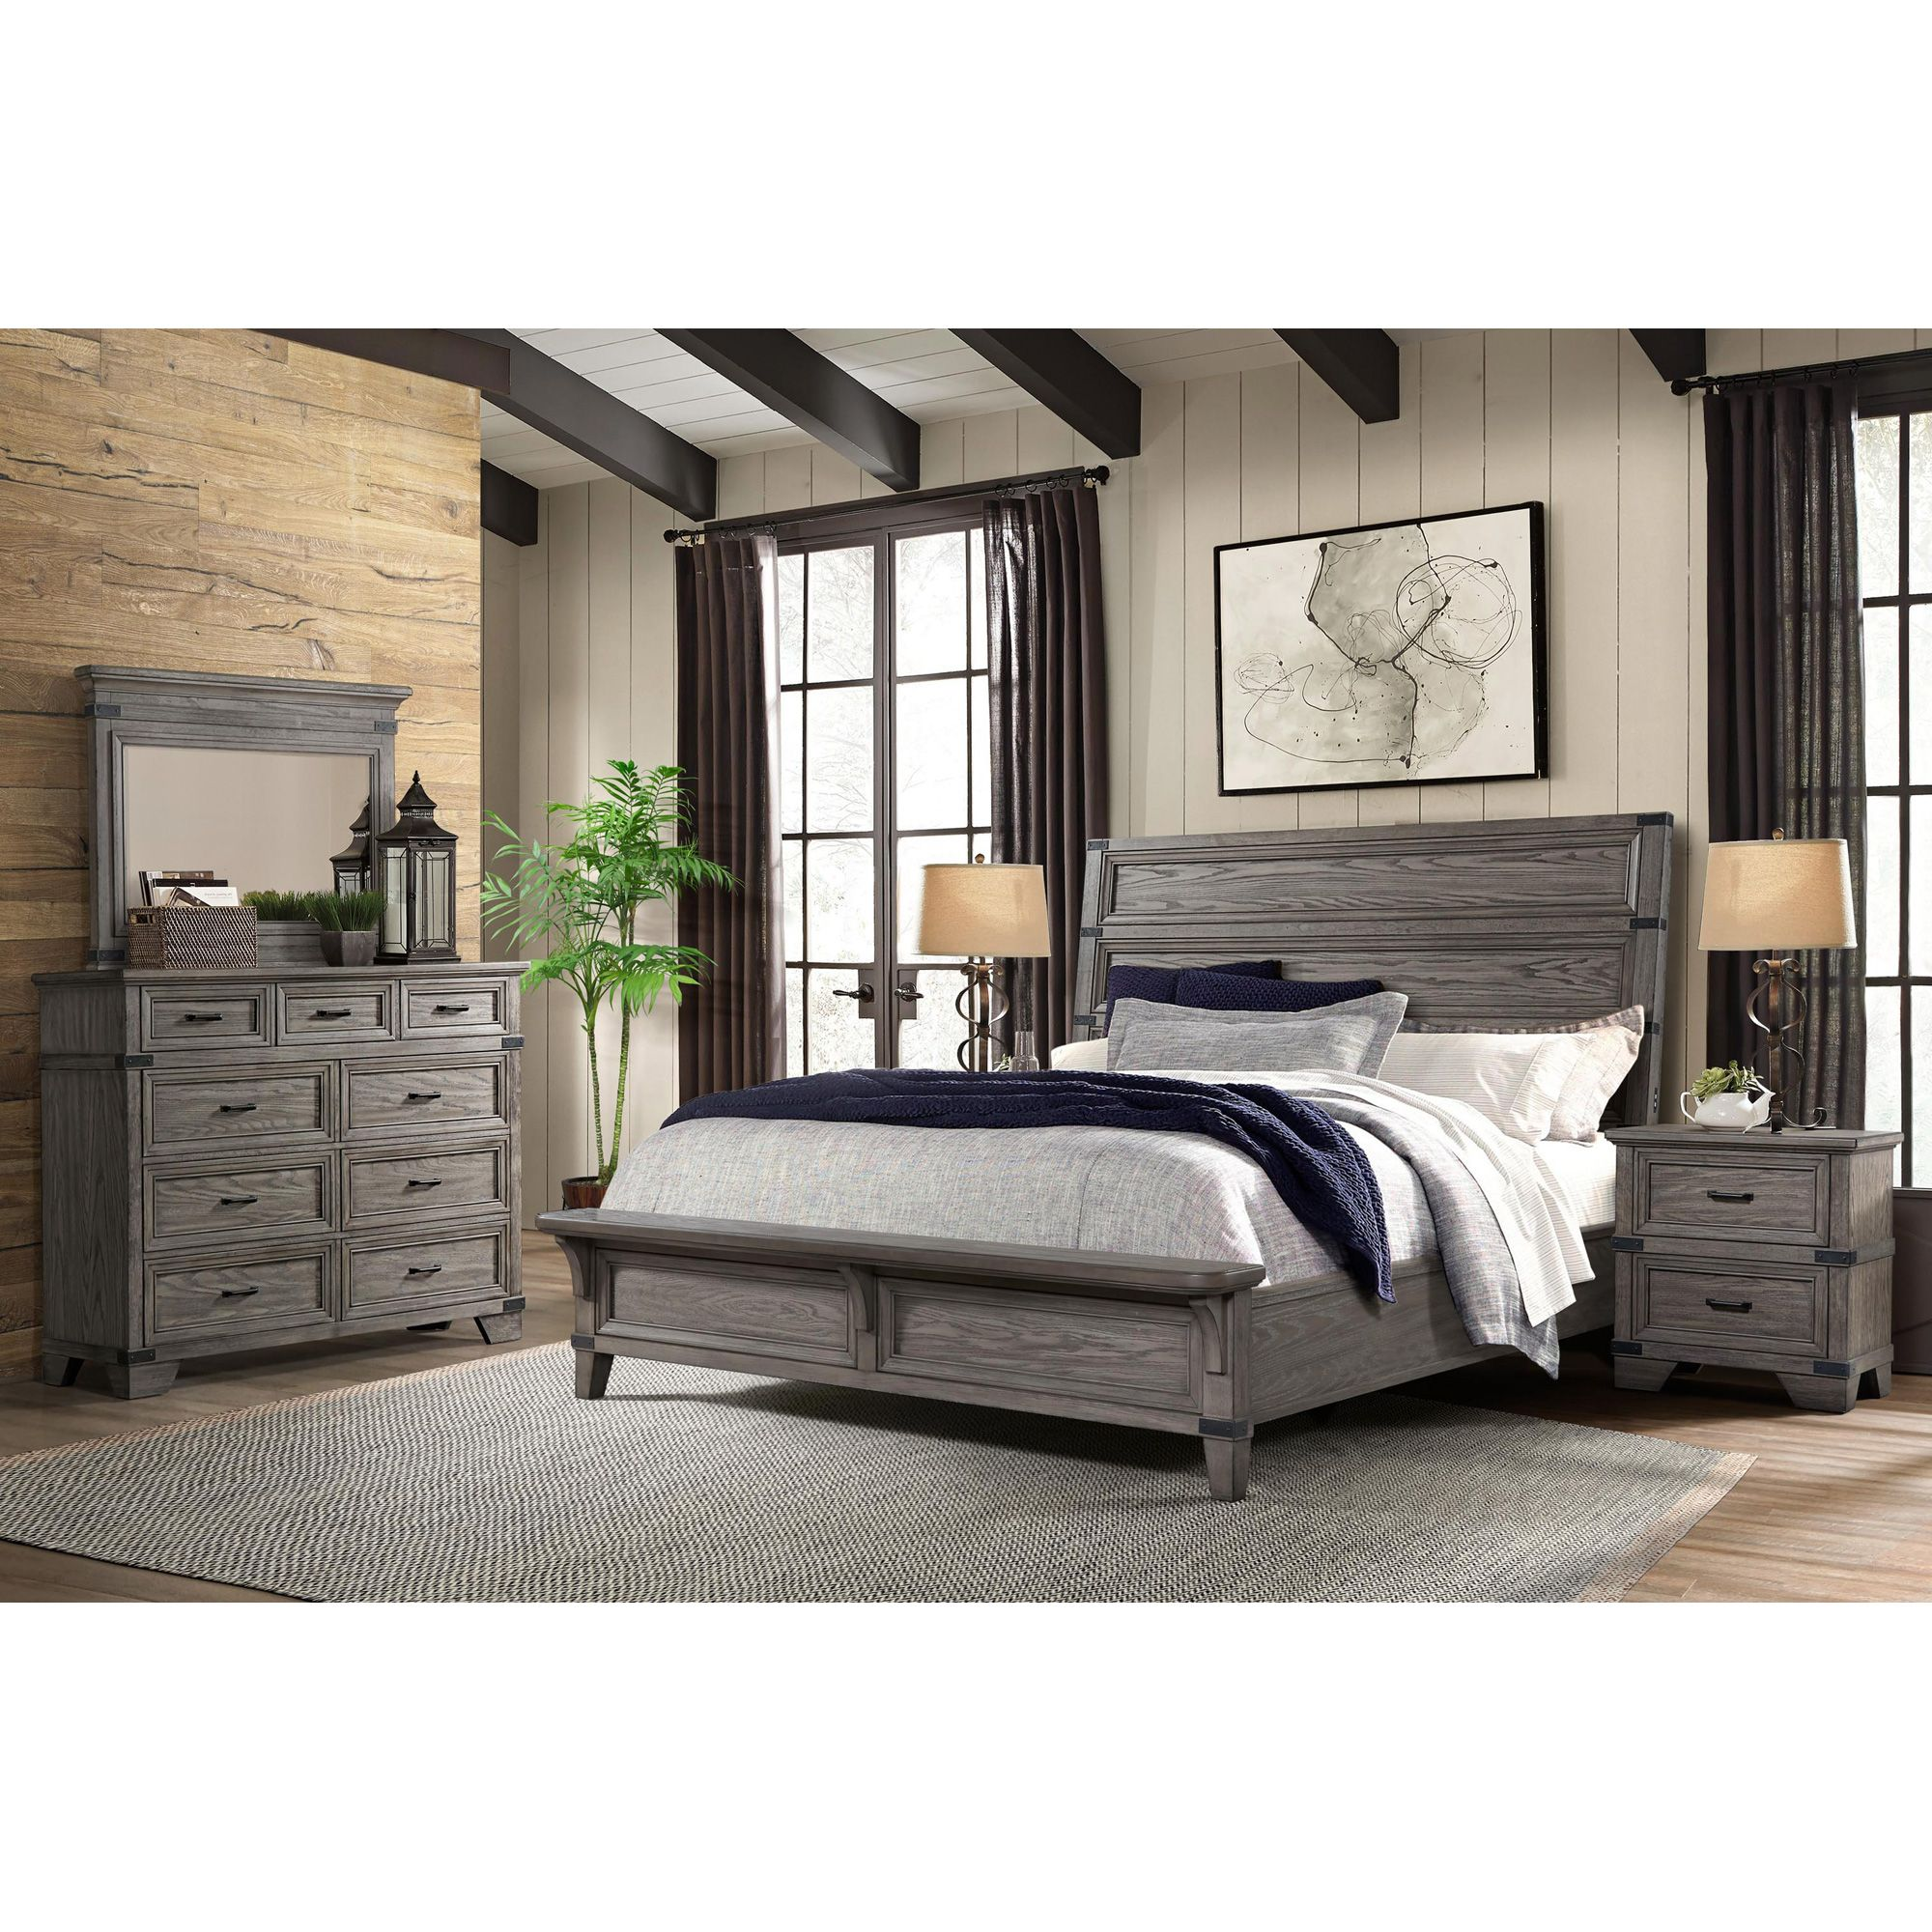 Forge Gray King Bed King Bedroom Sets King Bedroom Bed